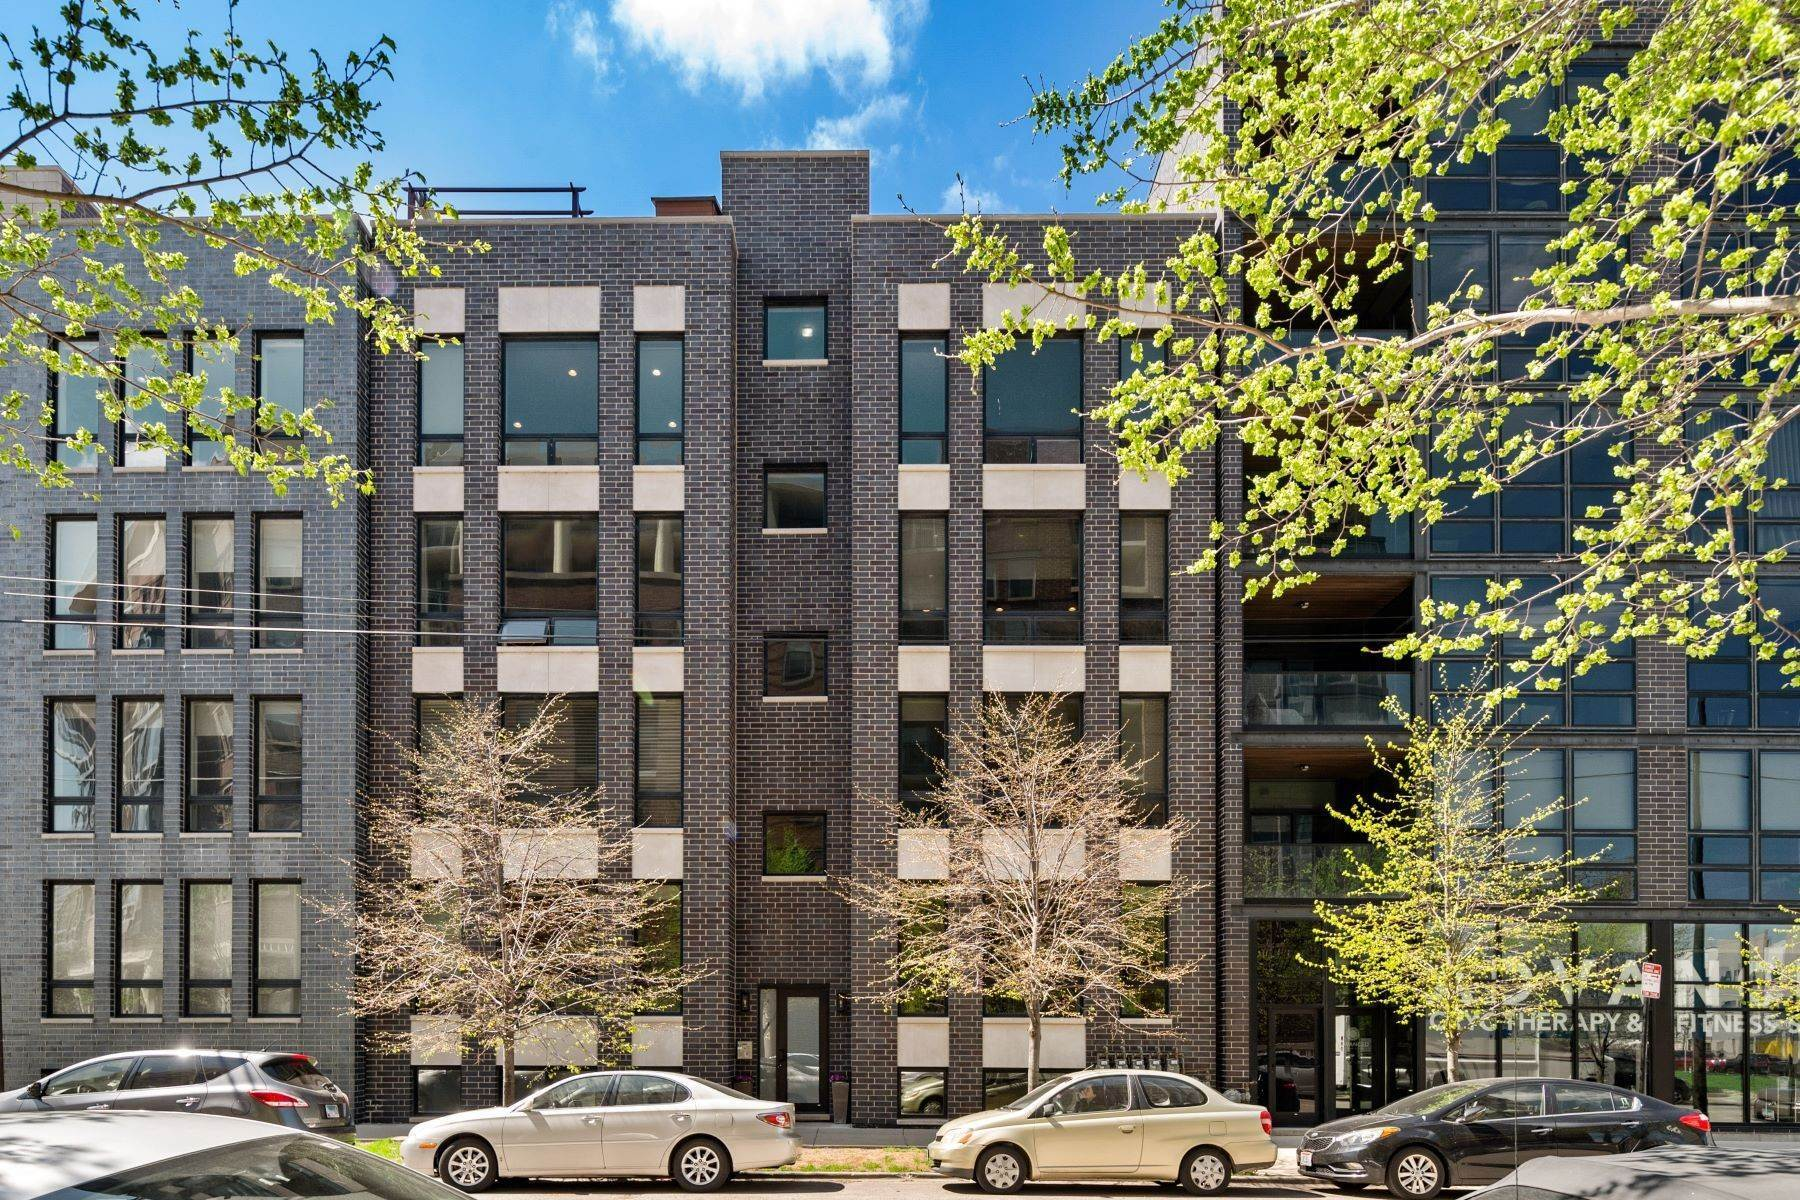 Property for Sale at Stunning, Contemporary Condo-Duplex 1014 N Larrabee Street, Unit 1N Chicago, Illinois 60610 United States